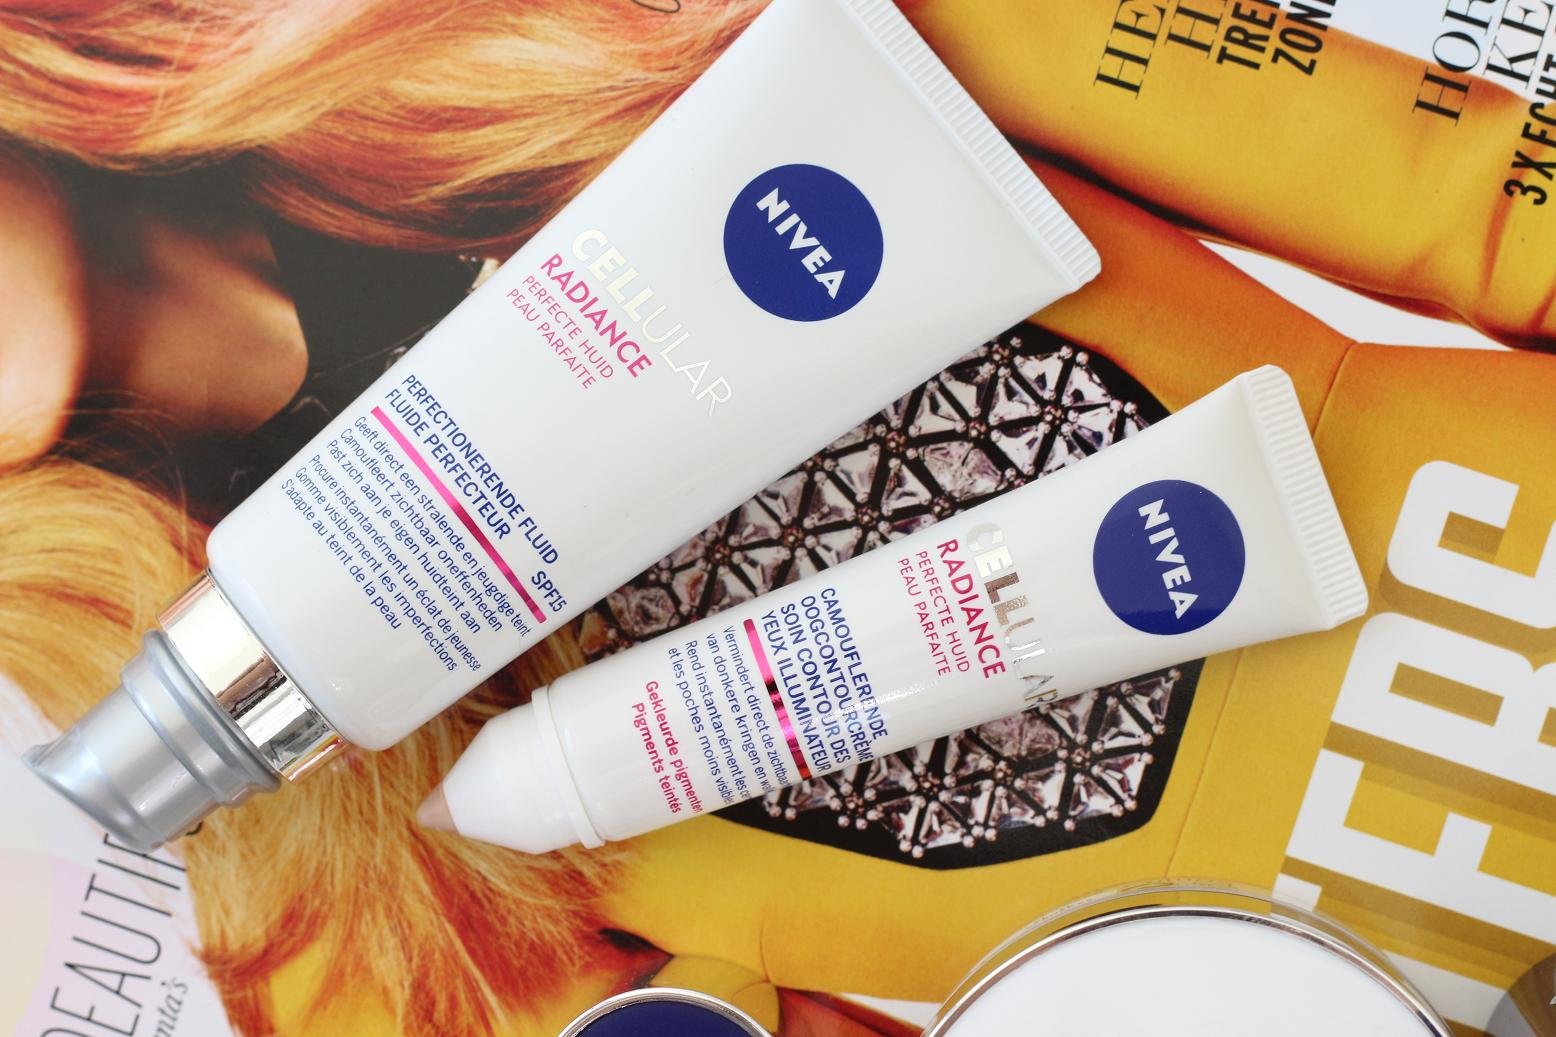 Nivea Cellular Radiance